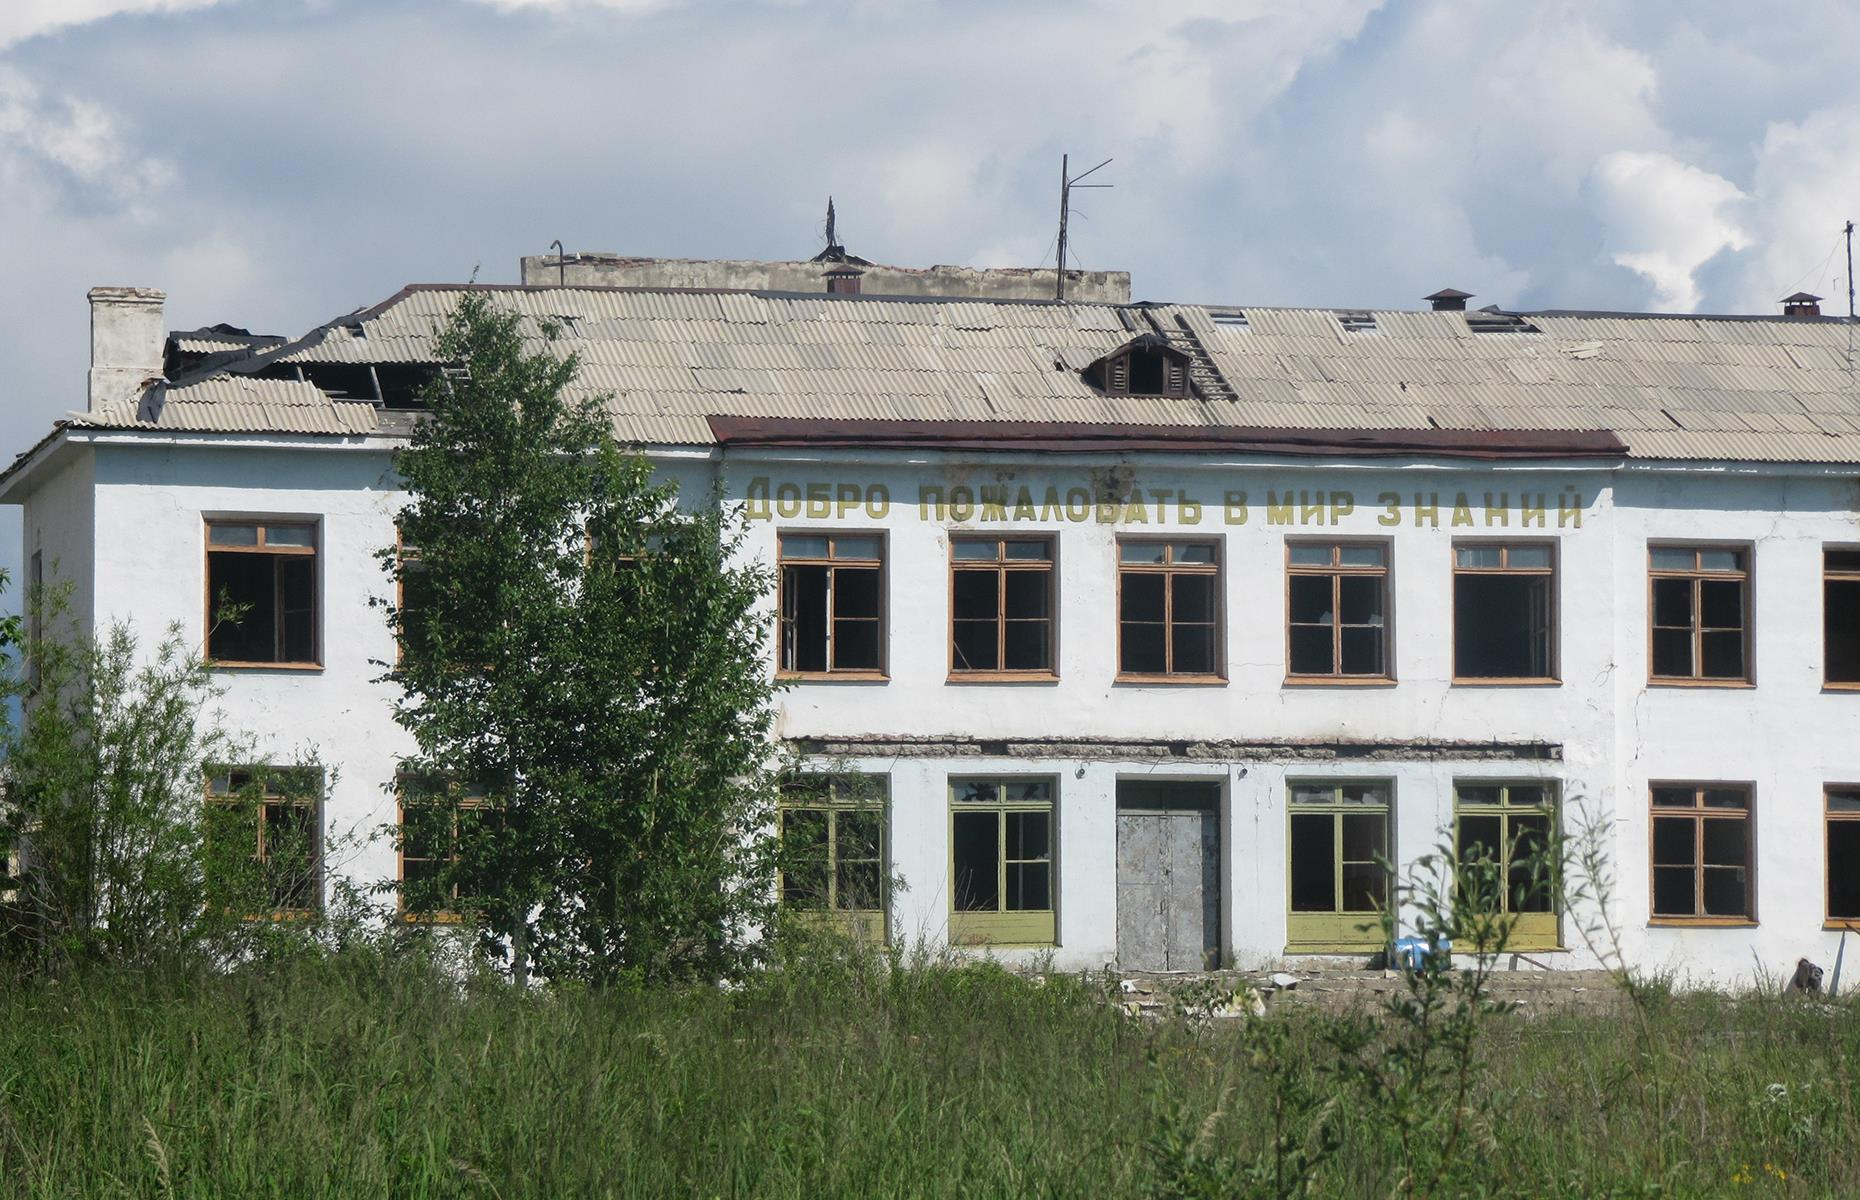 Slide 28 of 68: Located in Russia's Far East, Kadykchan was built by prisoners during the Second World War as an accommodation for the coal miners. Over time it grew to house workers from a few local coal mines that supplied Arkagalinskaya electric power station.